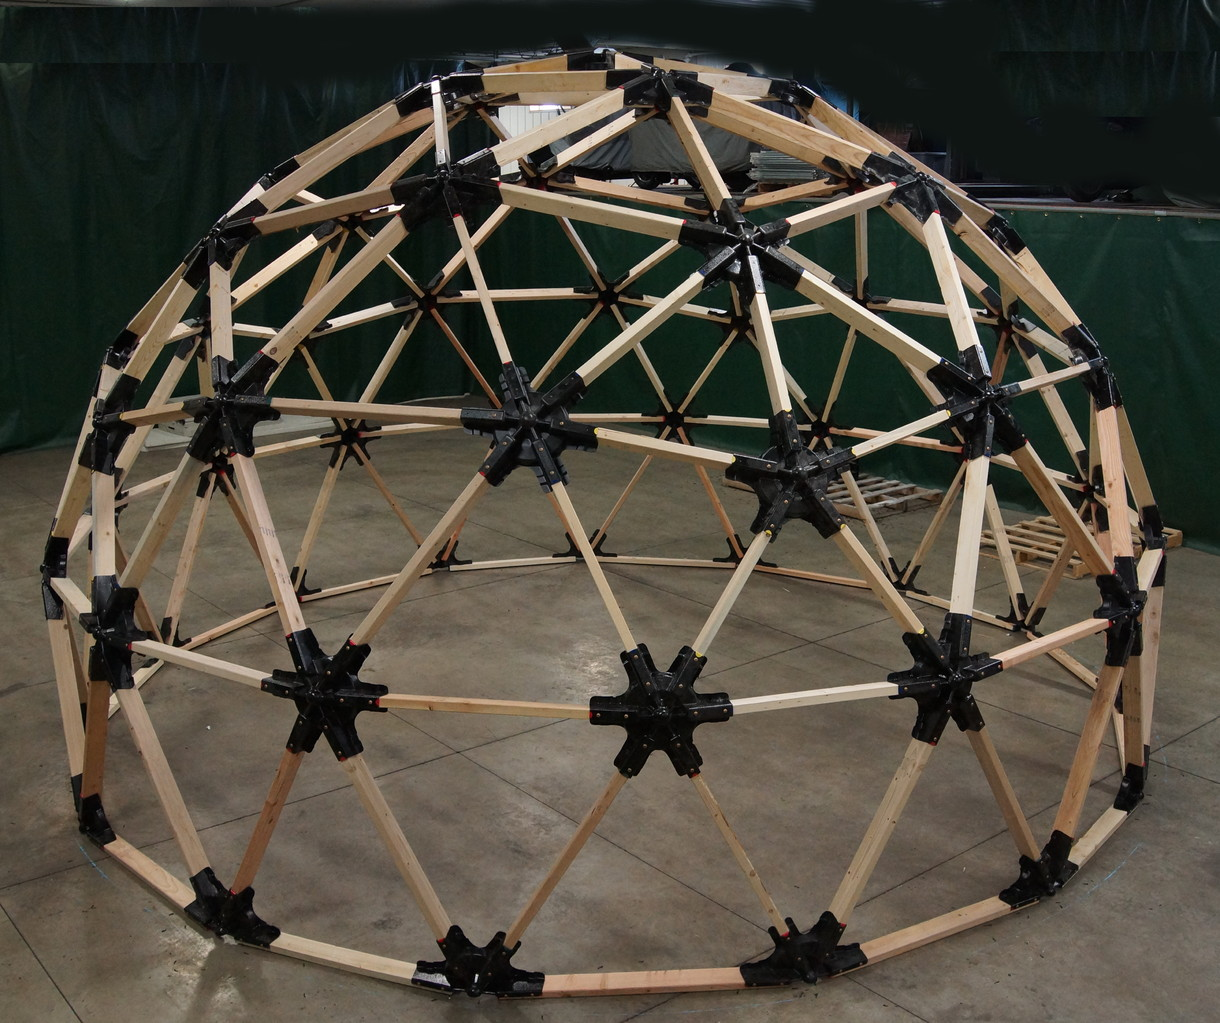 Dome Home Kits: 2x6 Heavy Duty Wood Geodesic Hub Kit